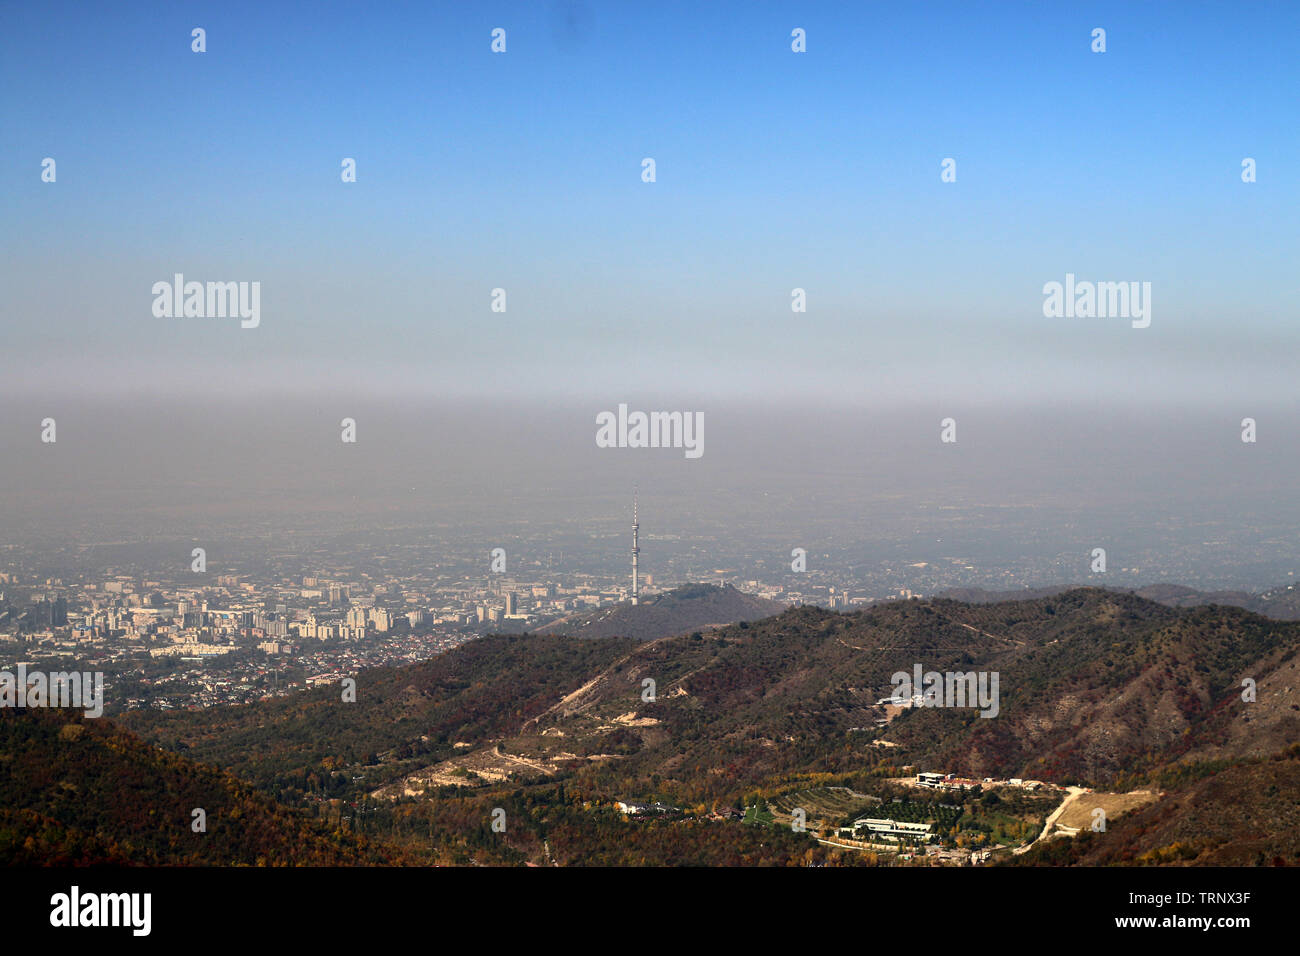 View of Almaty from above with clearly seen sea of smog Stock Photo